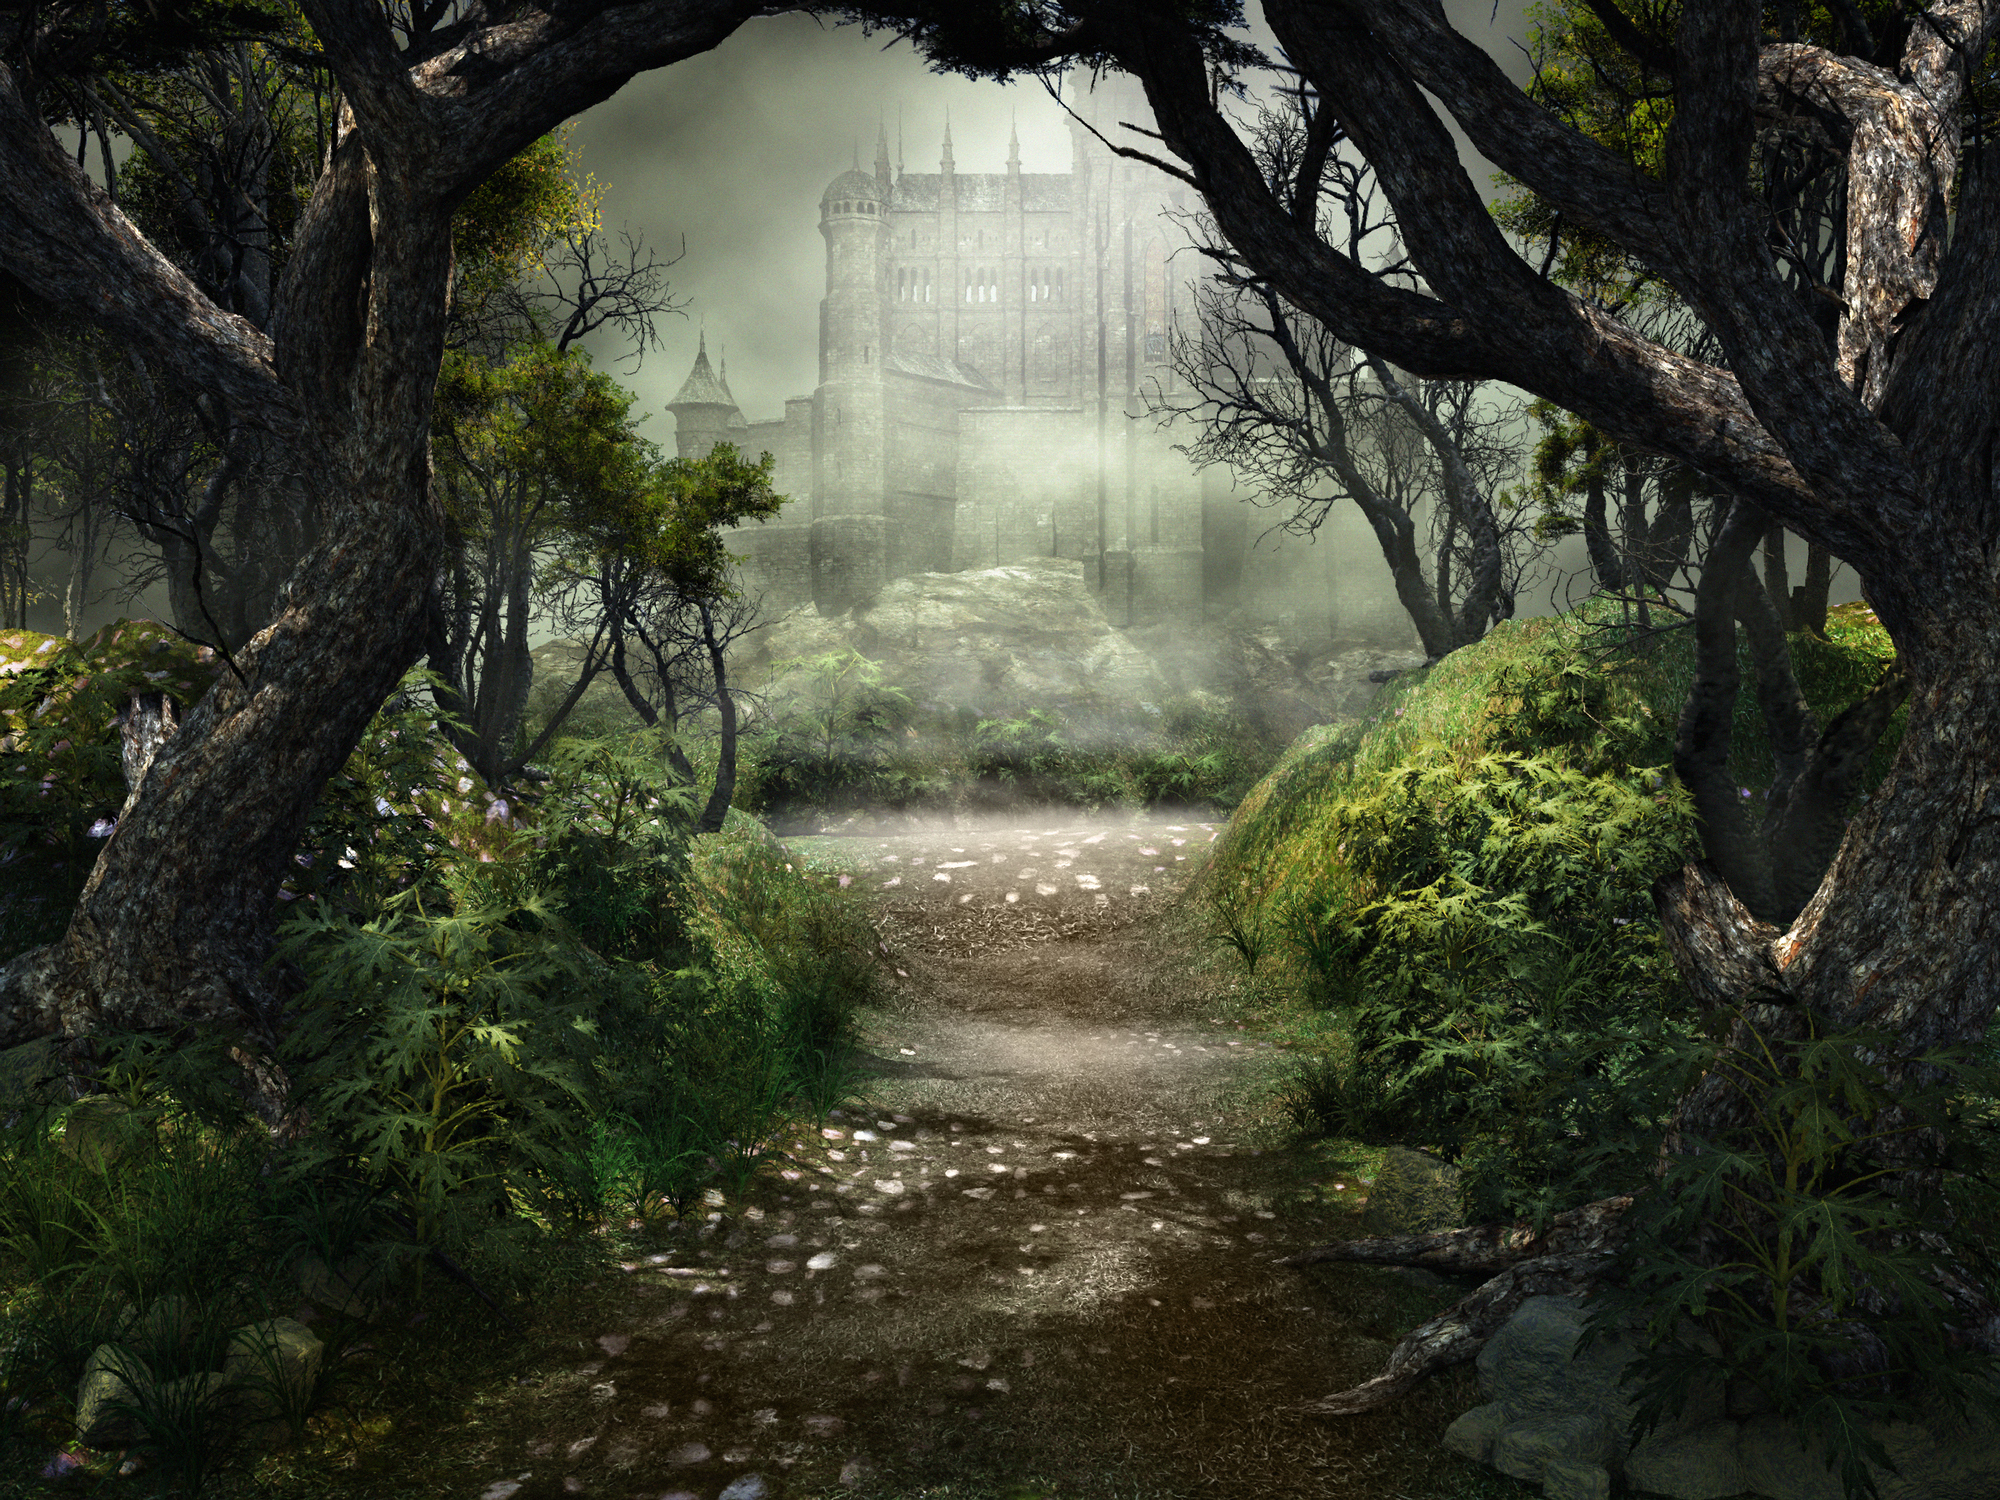 Dark scenery with forest road and castle